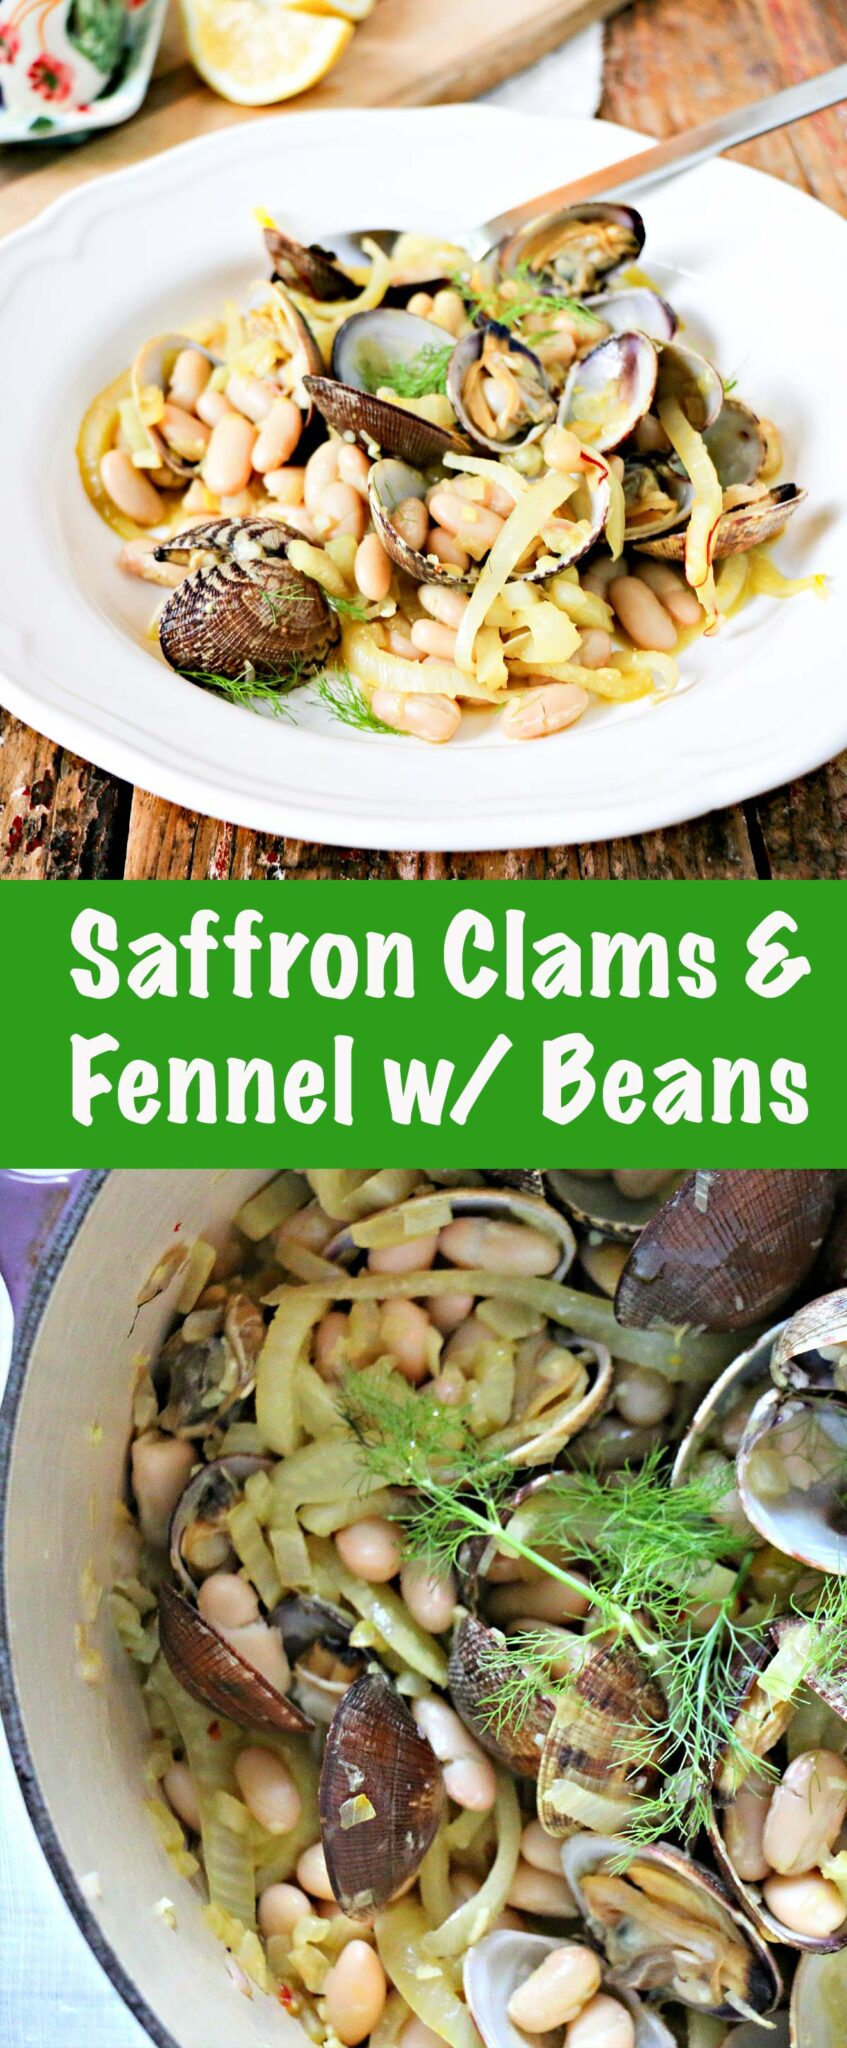 Saffron Clams & Fennel with White Beans long collage